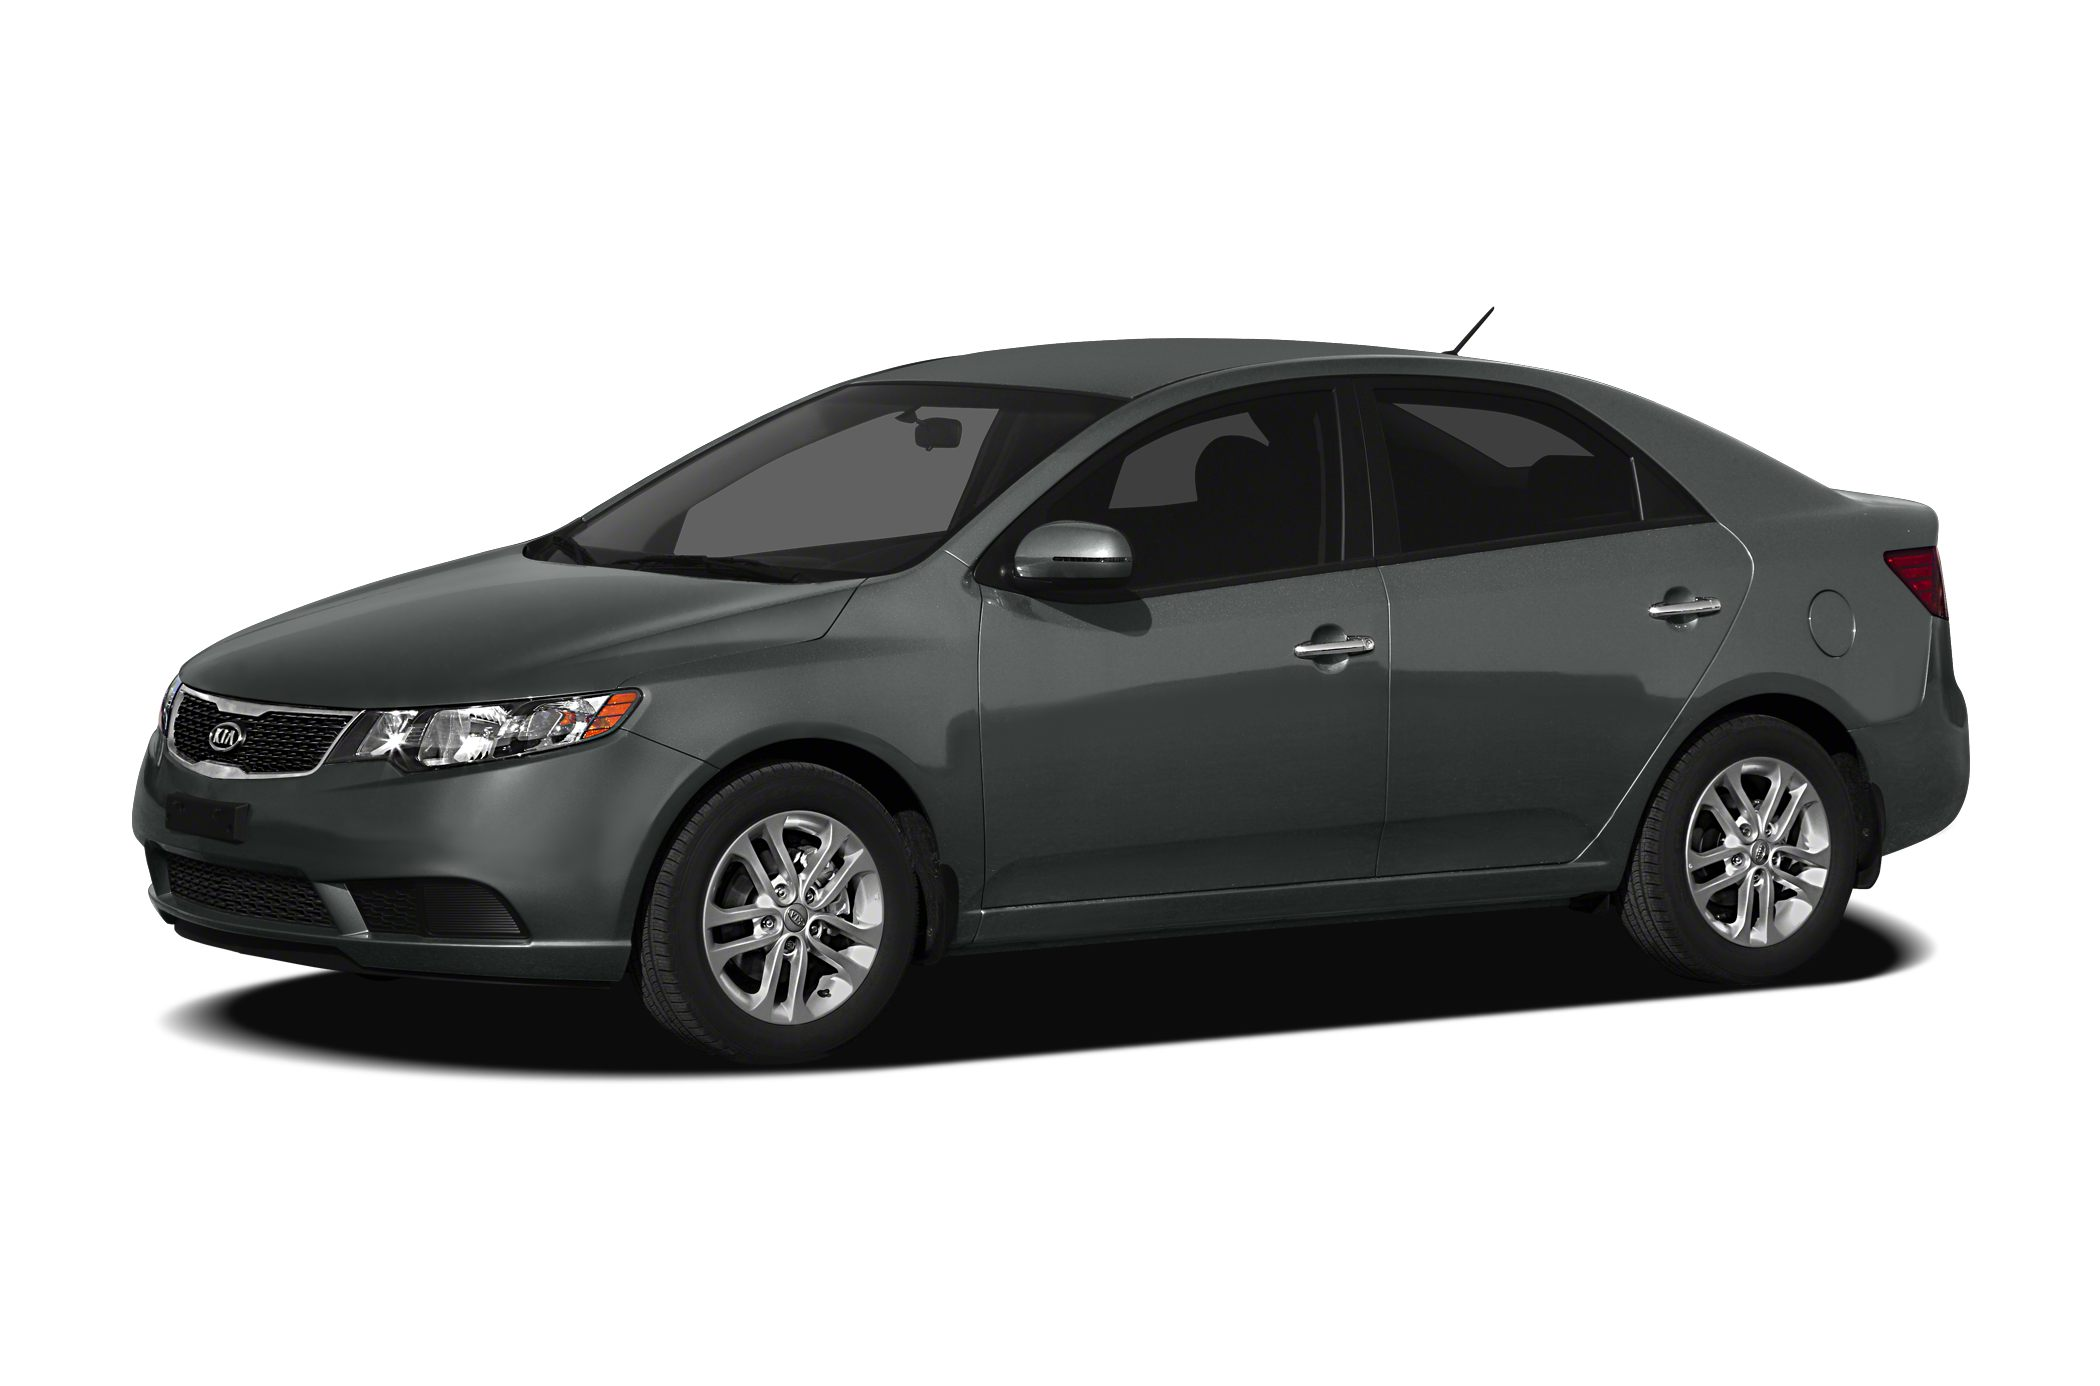 2012 Kia Forte SX Sedan for sale in Franklin for $14,494 with 33,634 miles